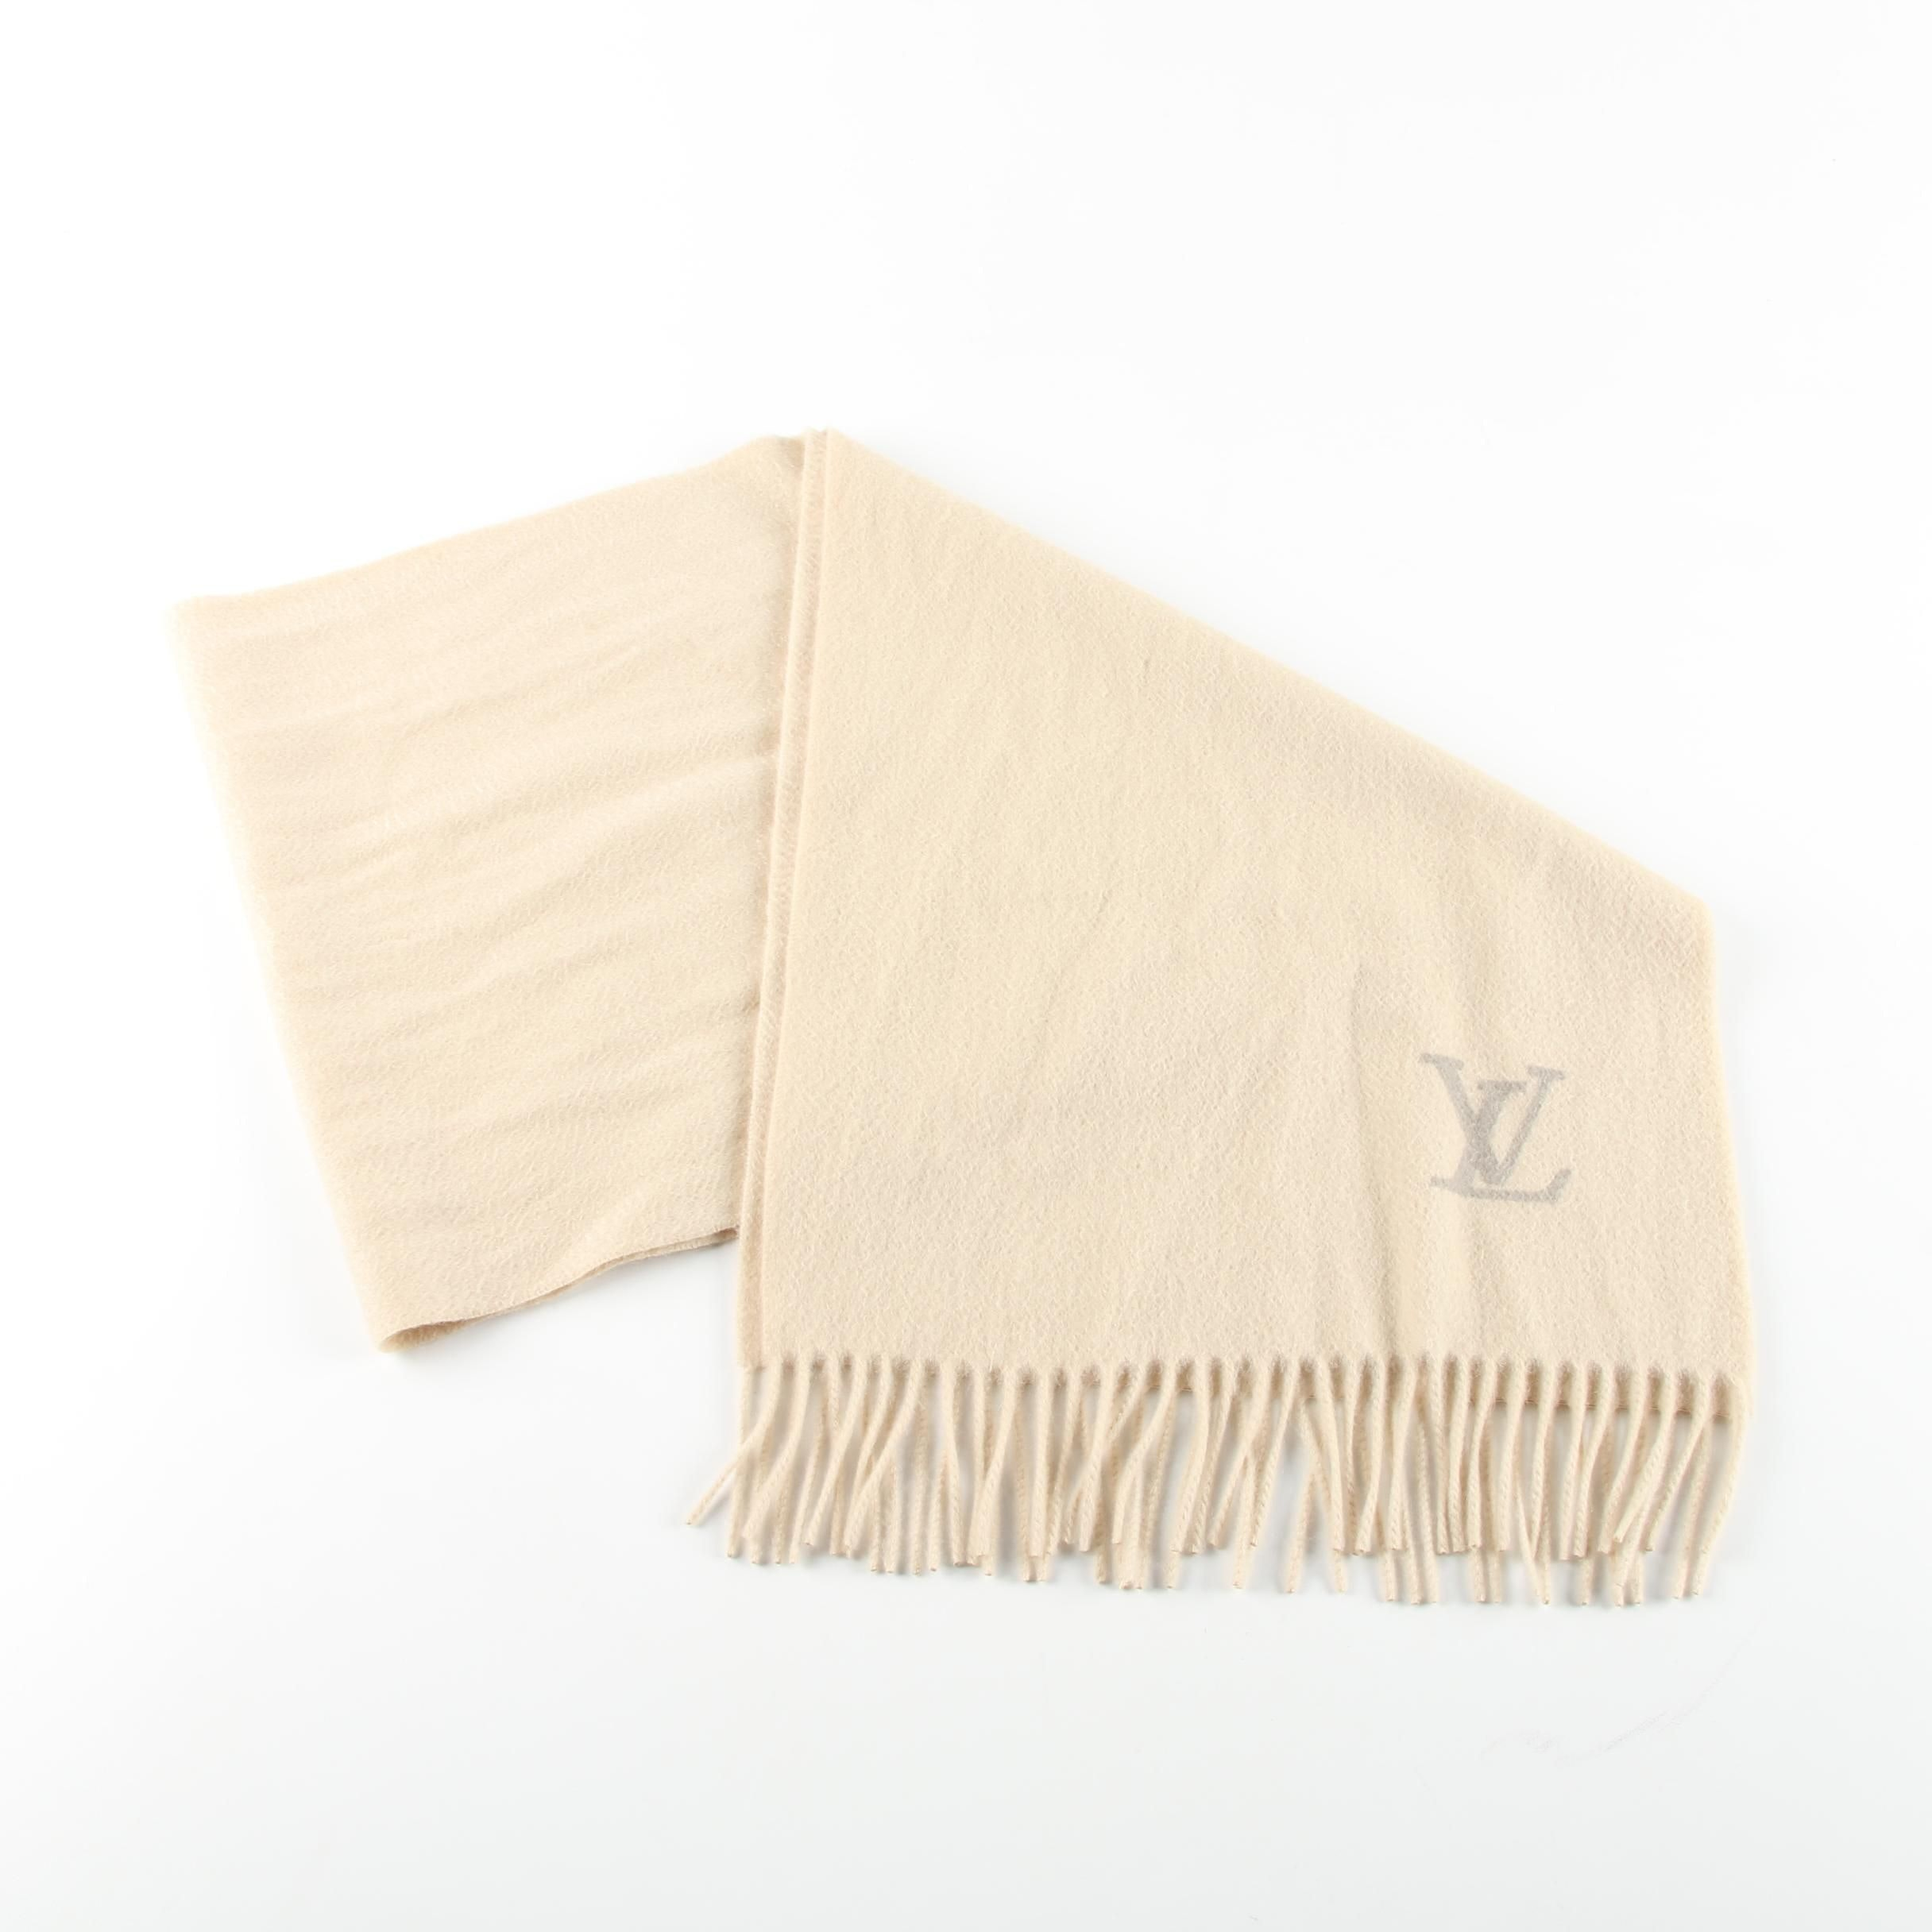 Louis Vuitton of Paris Cream Cashmere Scarf